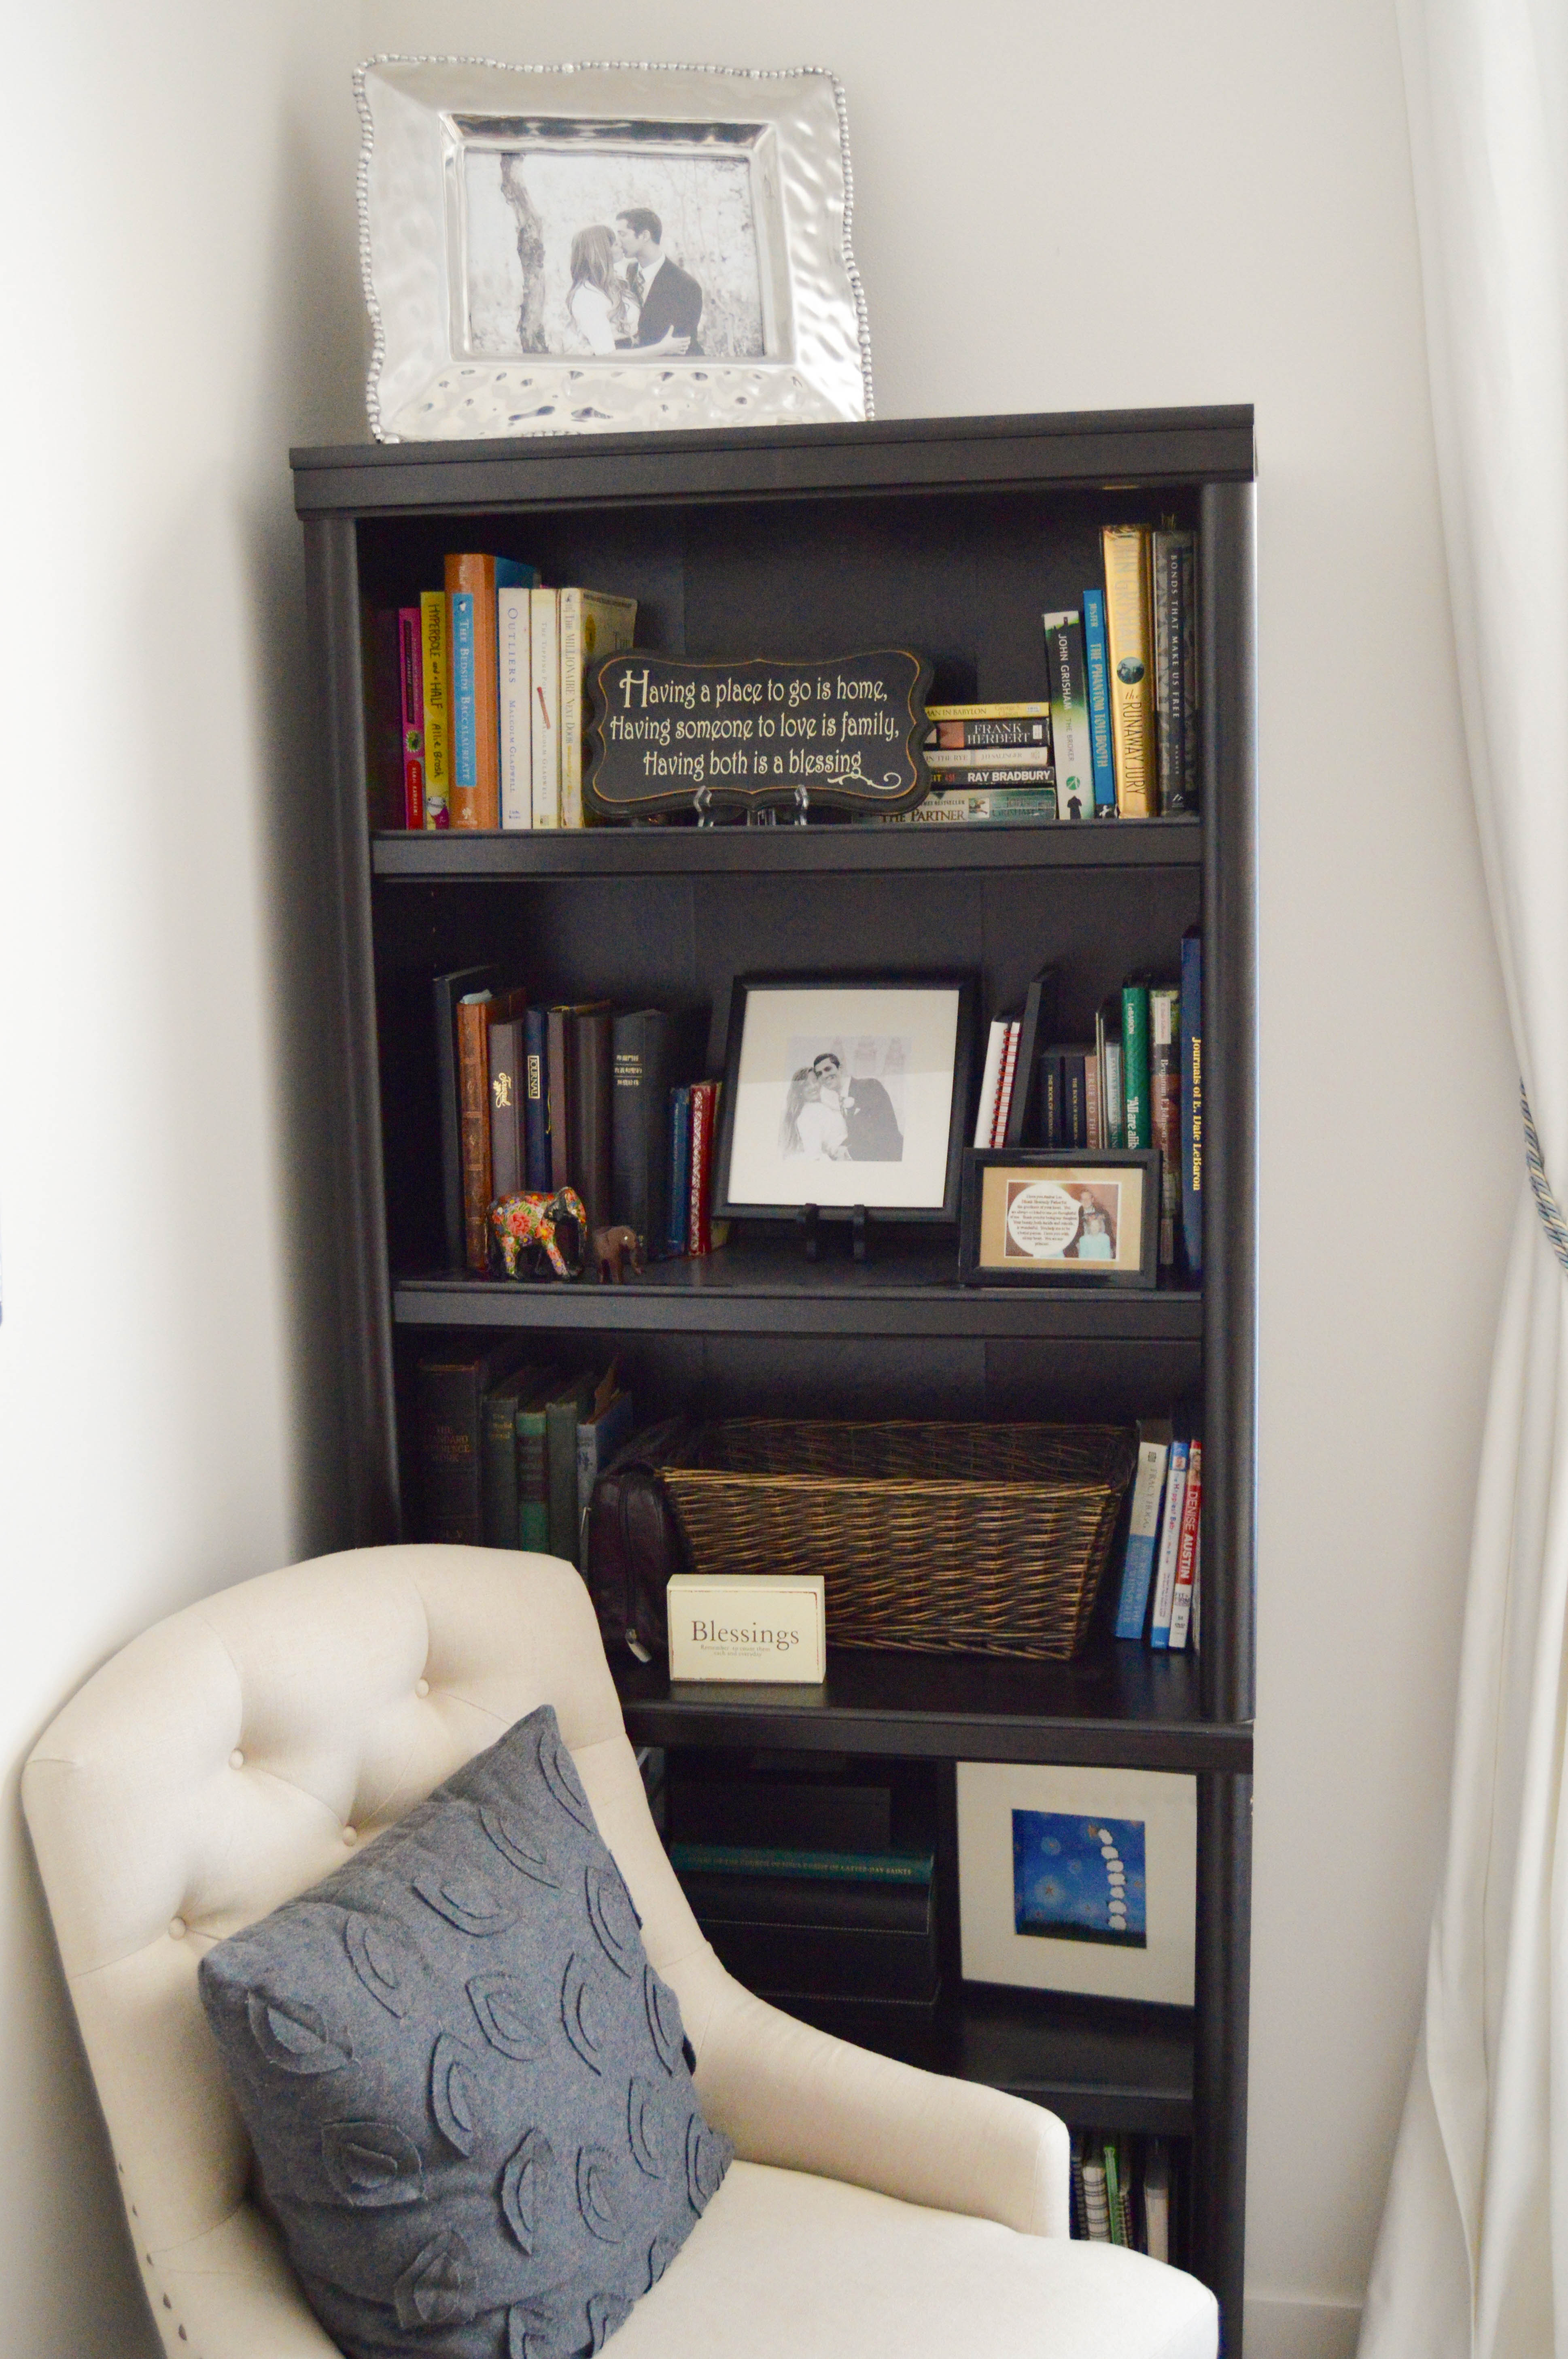 Tips for how to purge and organize your home like a pro. Organizing steps: categorizing and finding homes for things. 5 home organizing rules to live by. Bookcase organizing and arrangement